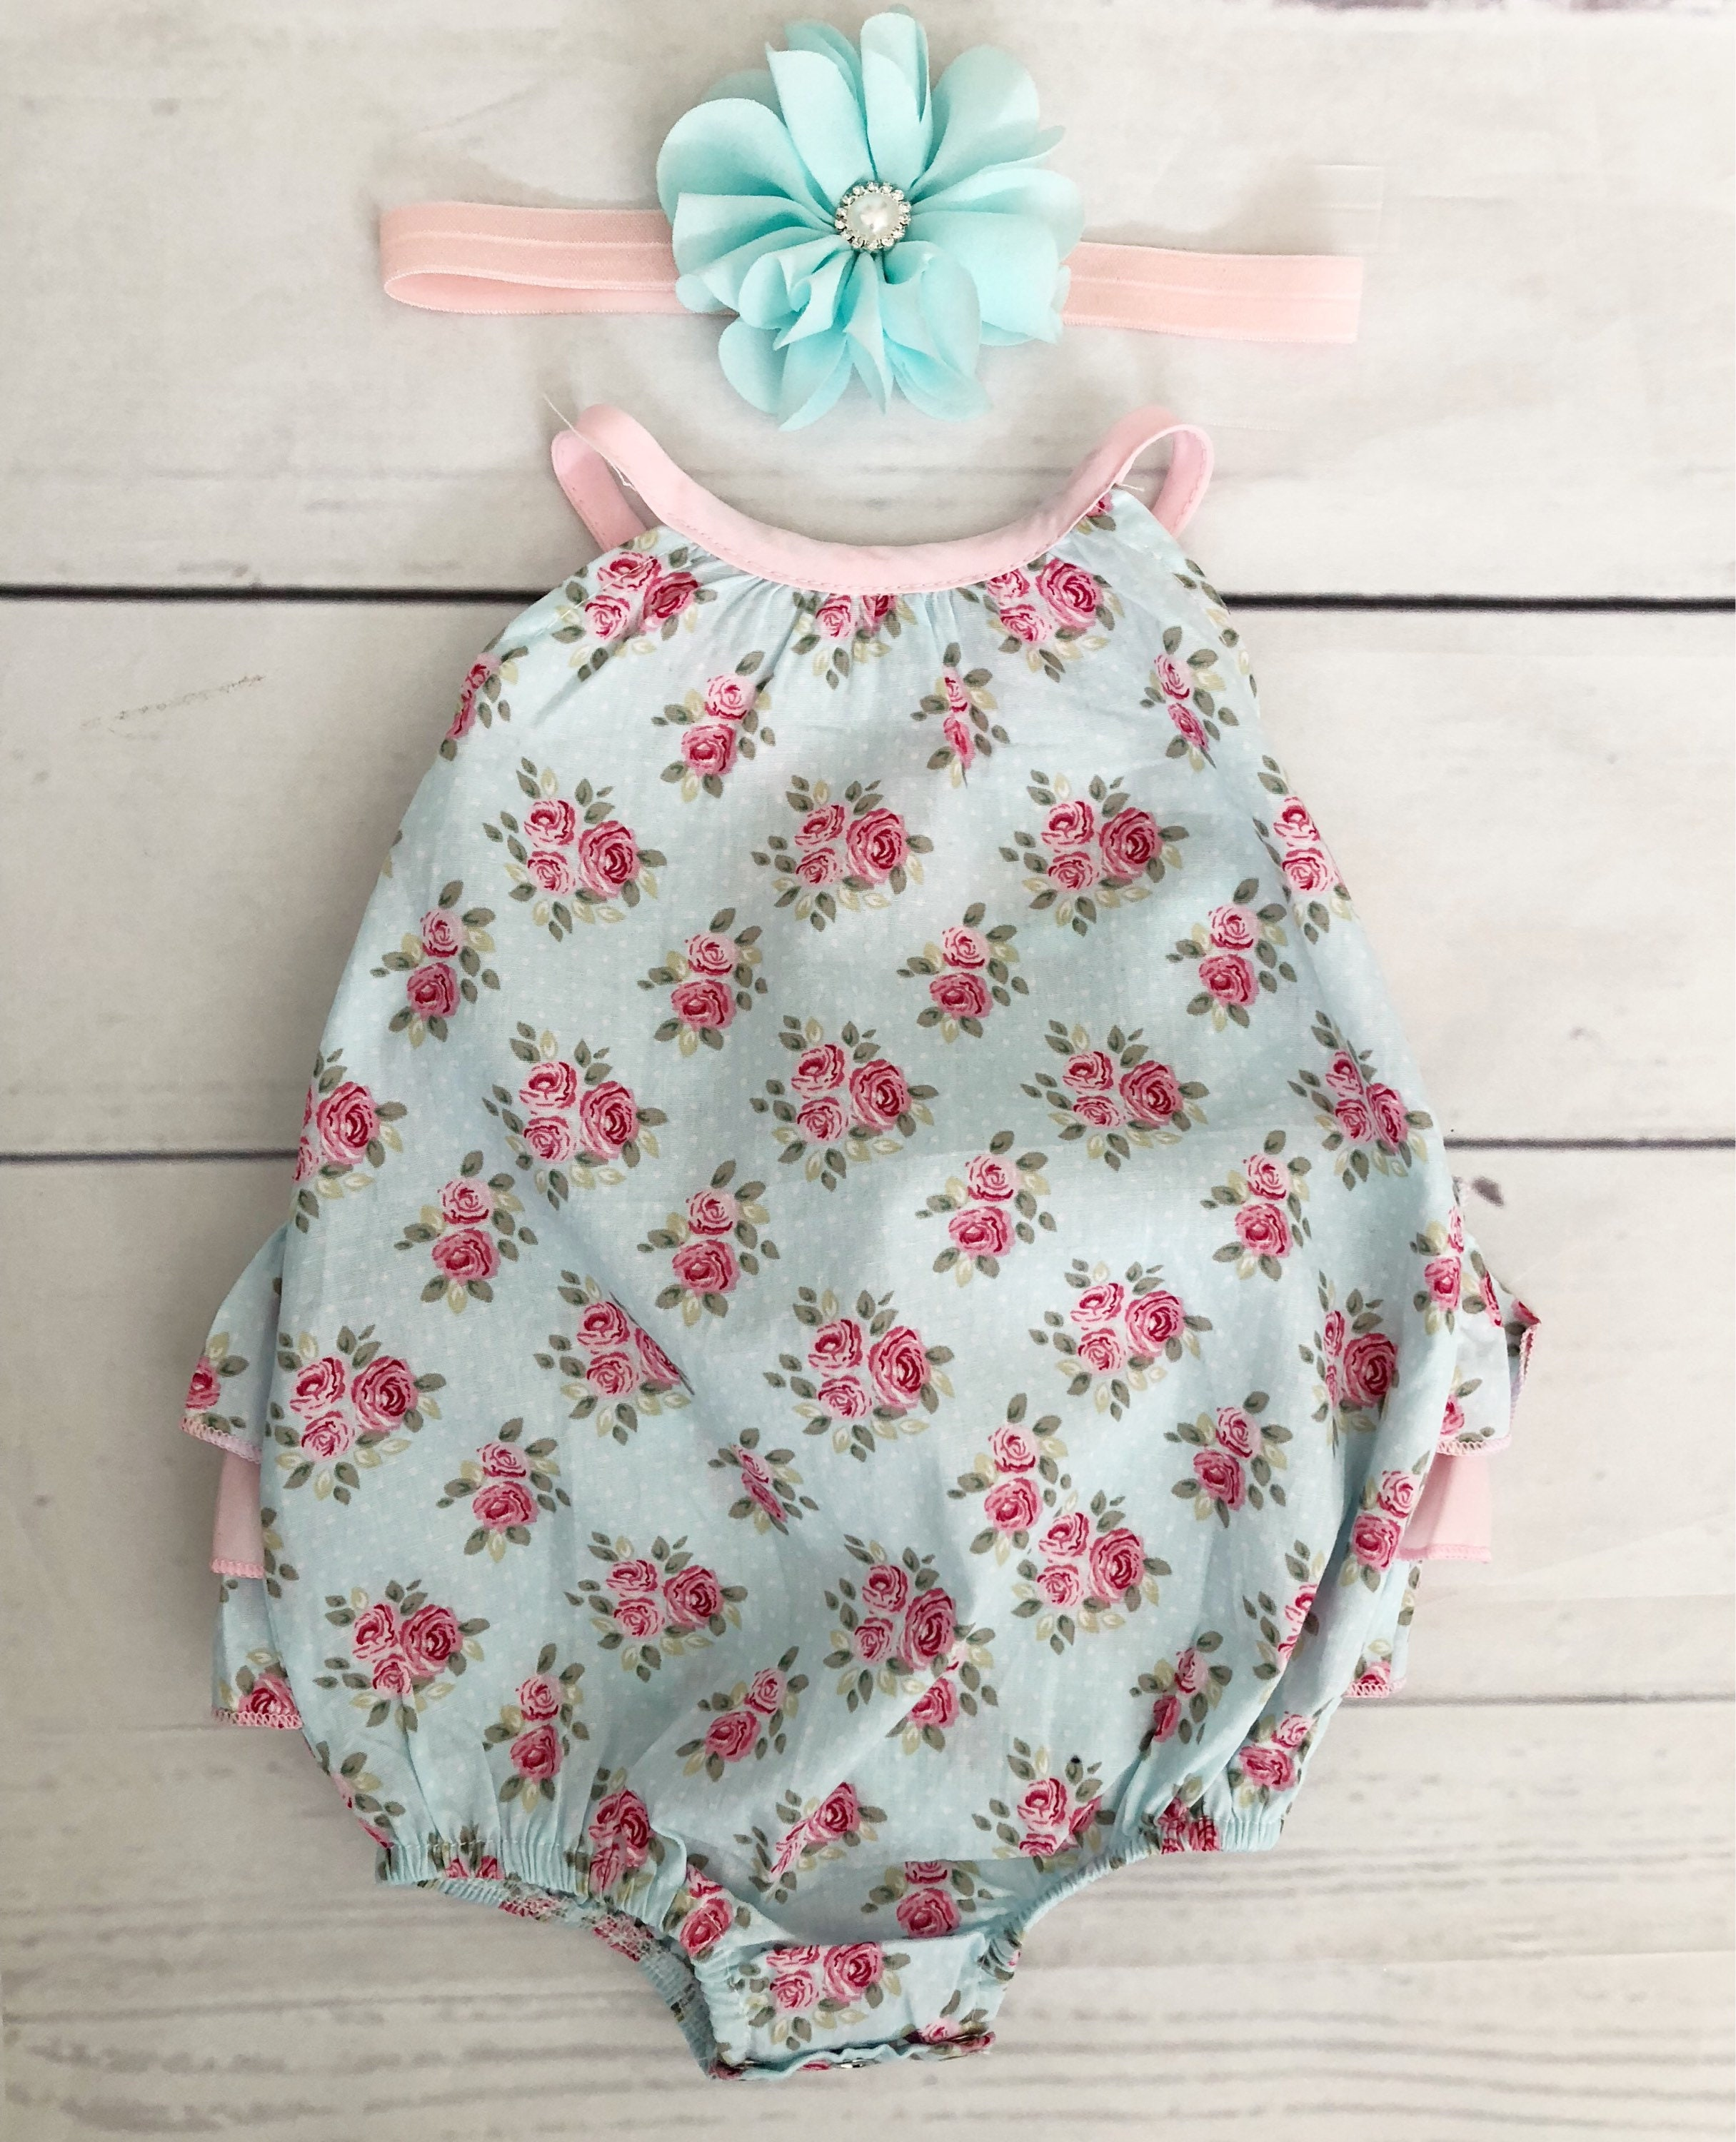 e960f0599 Baby girl clothes-baby girl bubble romper-floral baby outfit-ruffle ...